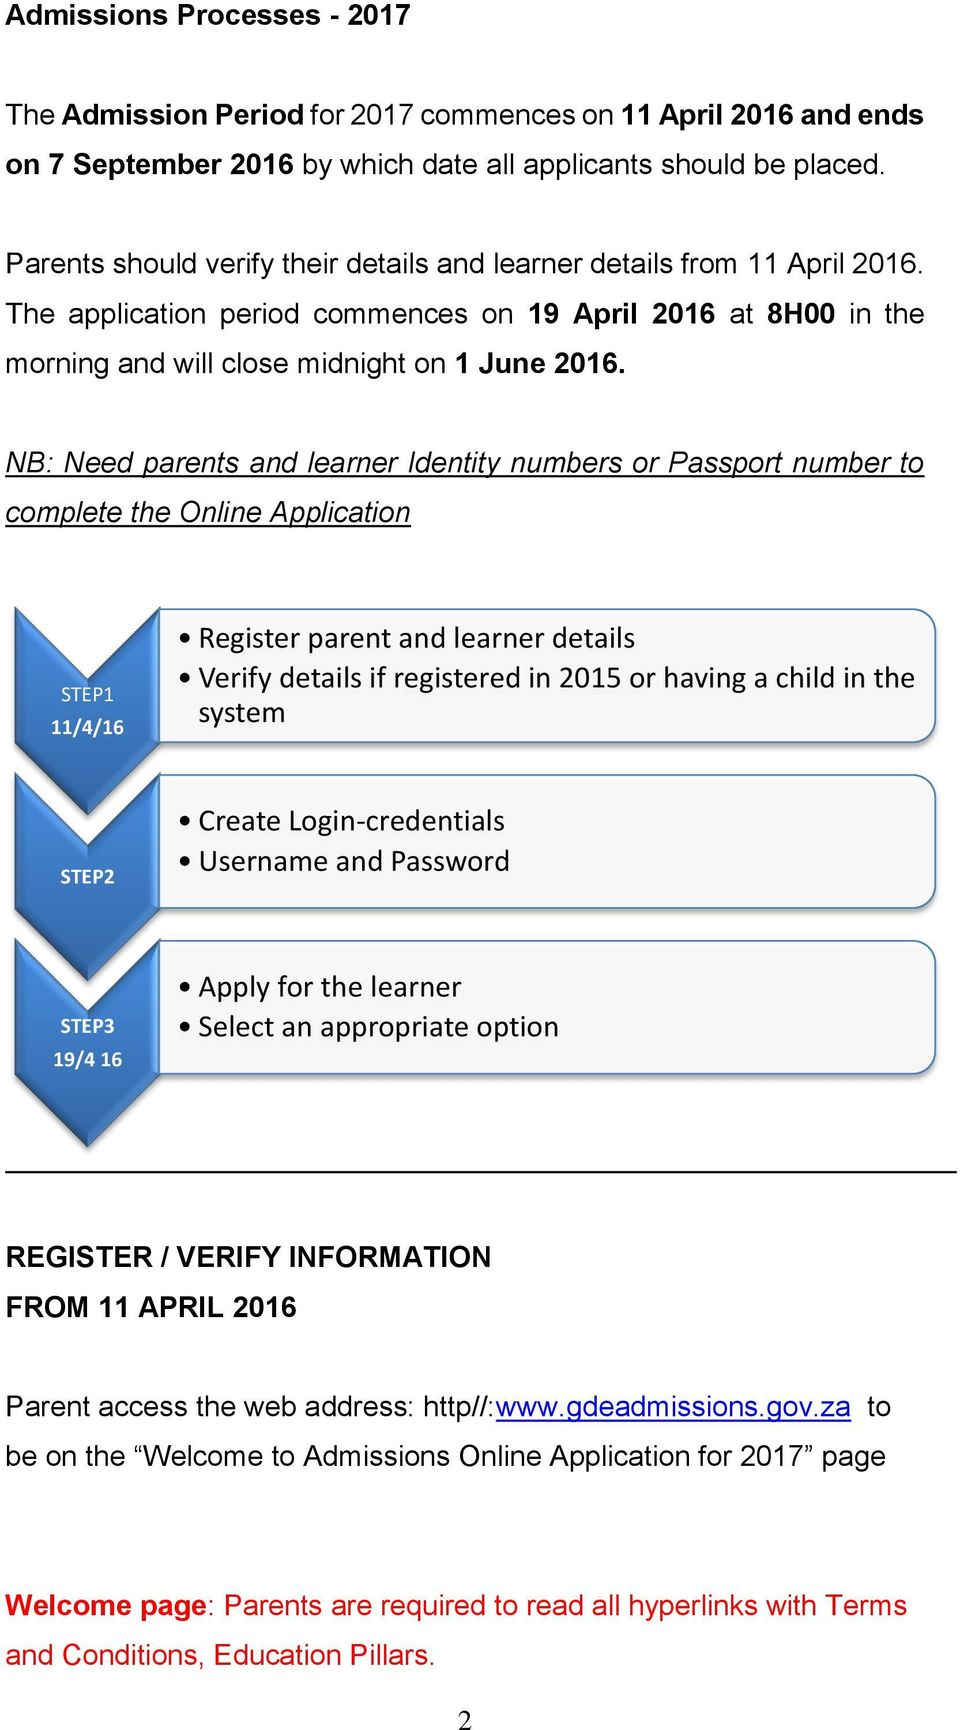 NB: Need parents and learner Identity numbers or Passport number to complete the Online Application STEP1 11/4/16 Register parent and learner details Verify details if registered in 2015 or having a